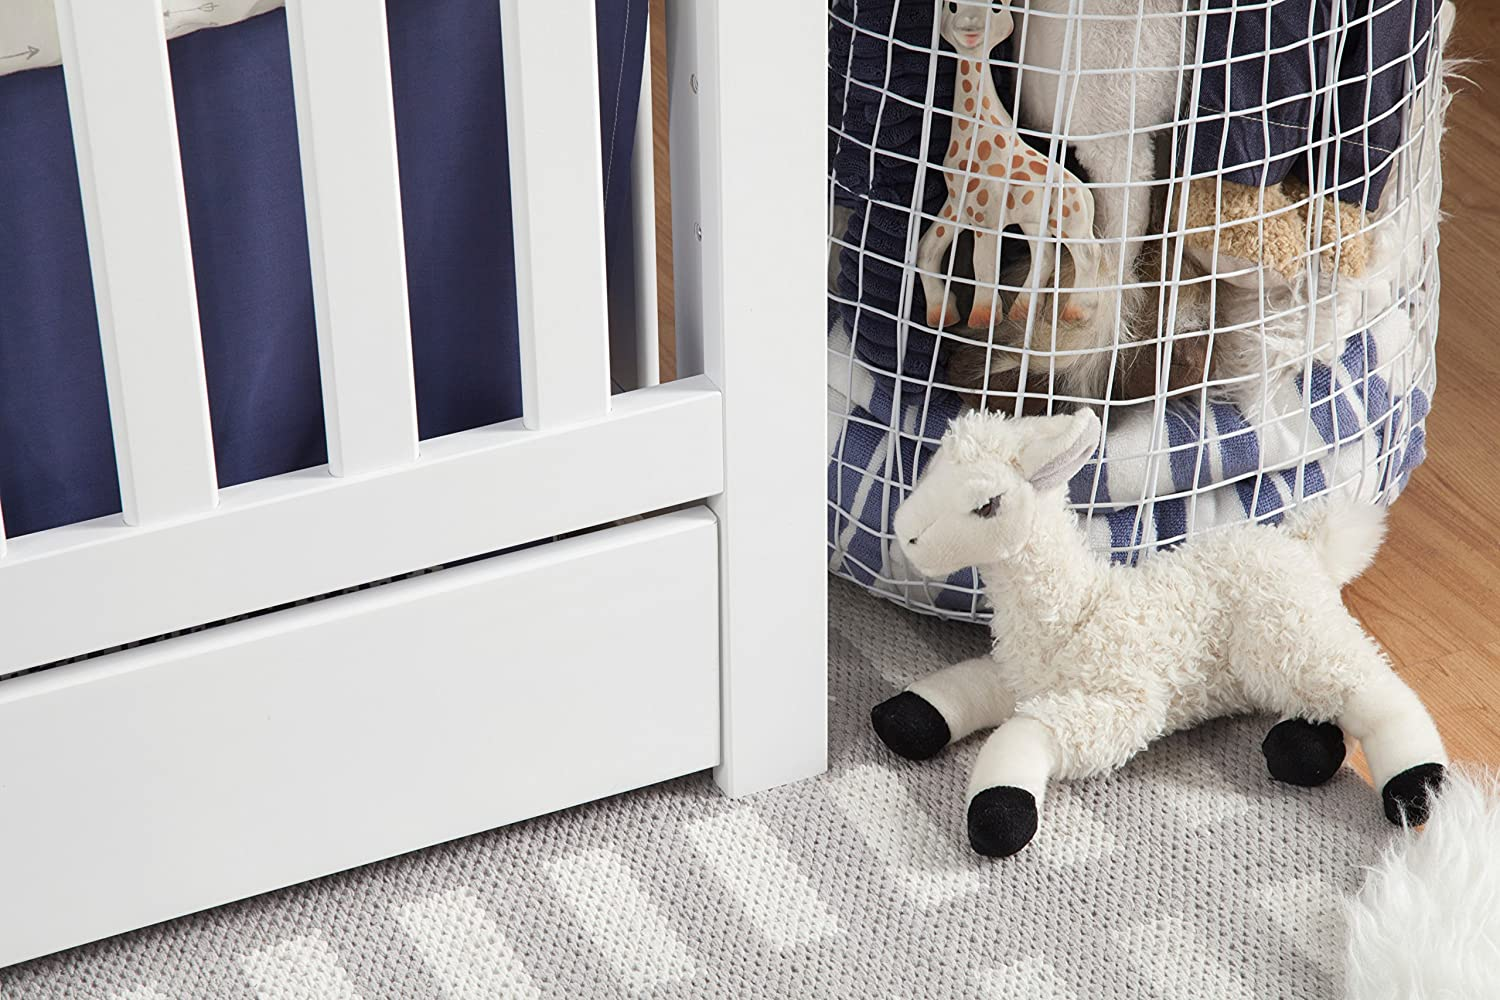 Carters by DaVinci Colby 4-in-1 Convertible Crib with Trundle Drawer White